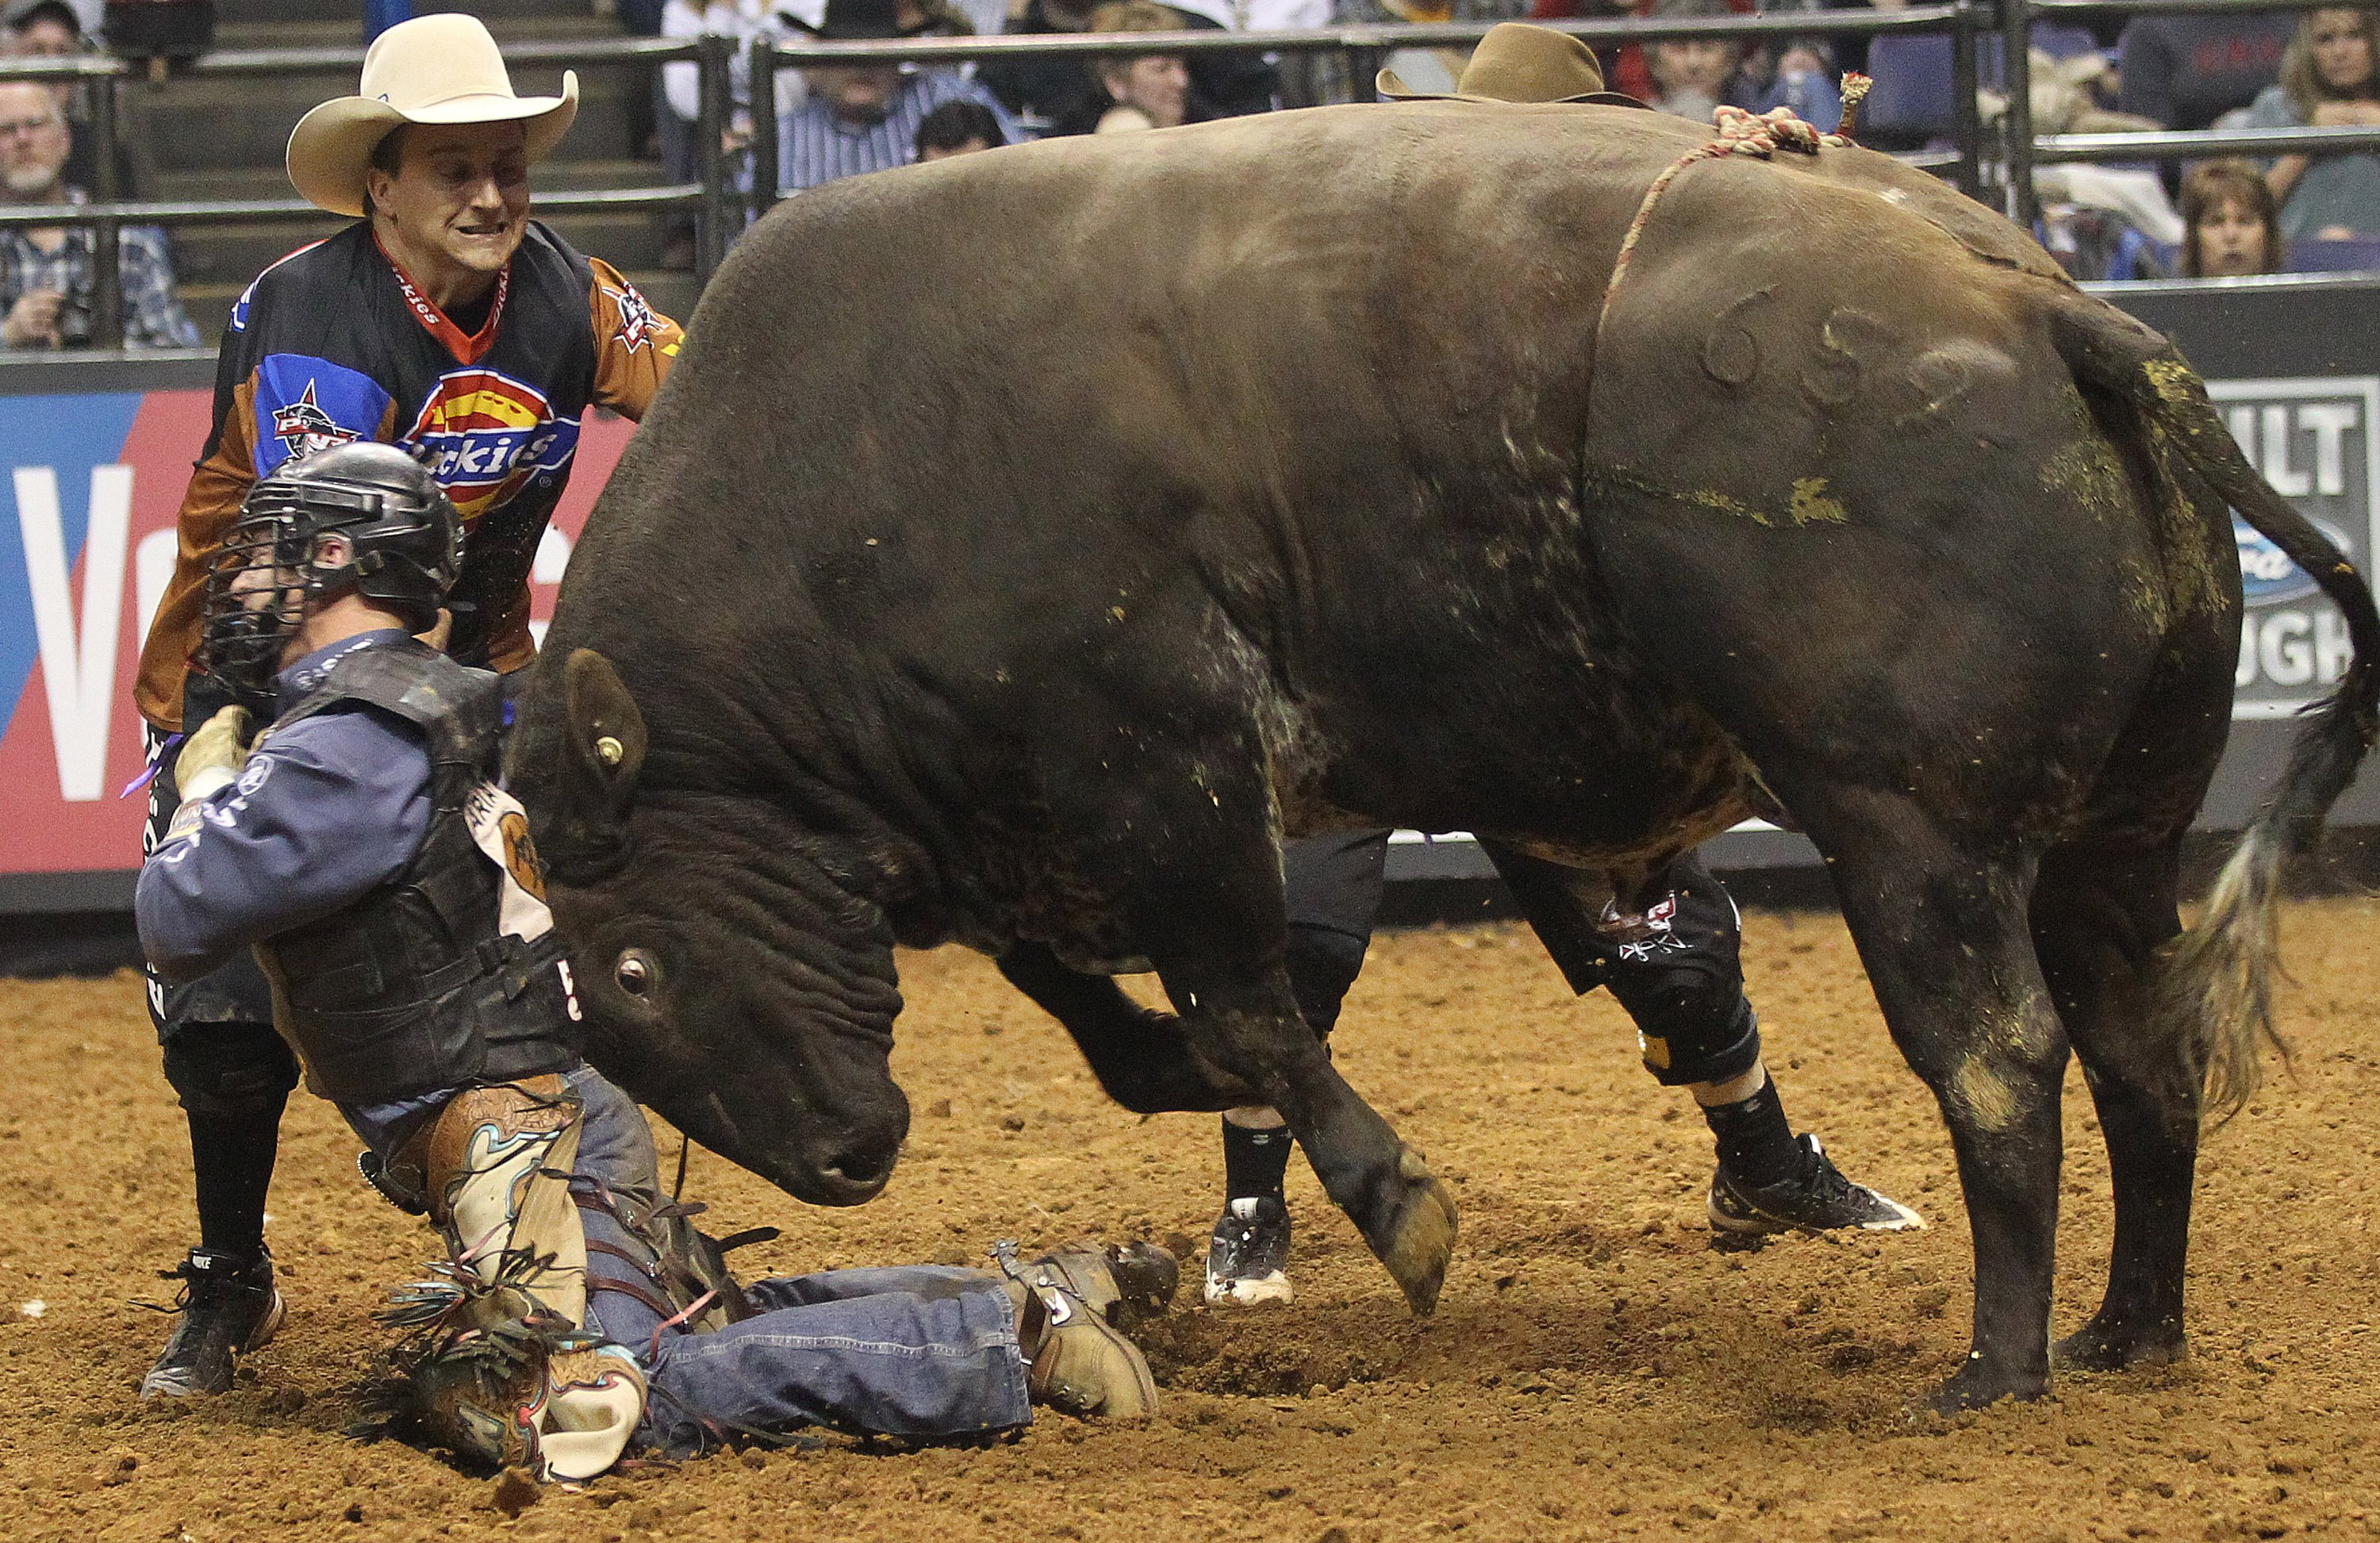 rodeo wallpapers high quality download free